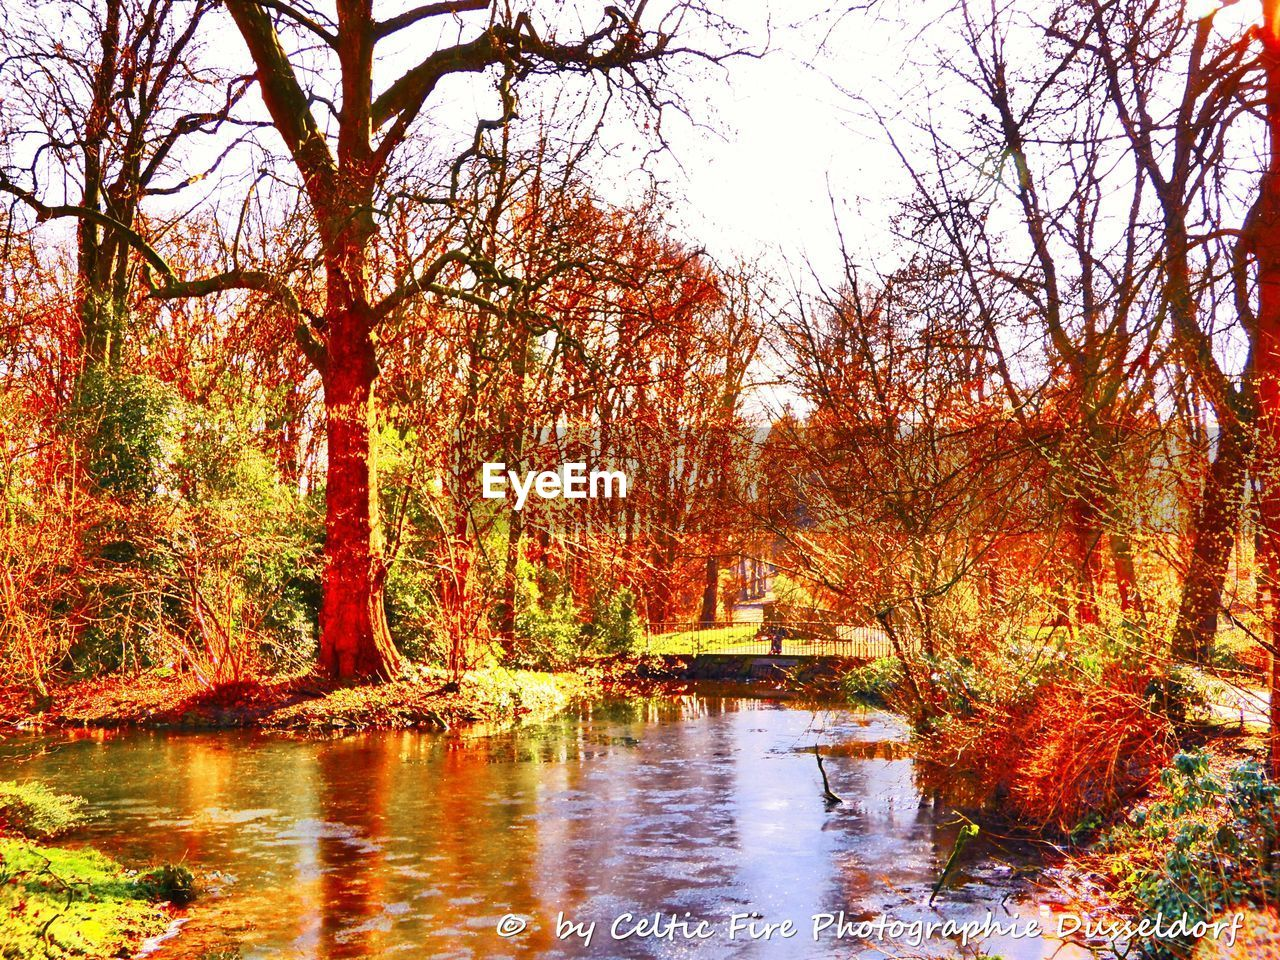 tree, autumn, water, change, nature, tranquil scene, reflection, beauty in nature, leaf, tranquility, scenics, lake, no people, day, branch, outdoors, forest, growth, waterfront, bare tree, landscape, tree trunk, grass, sky